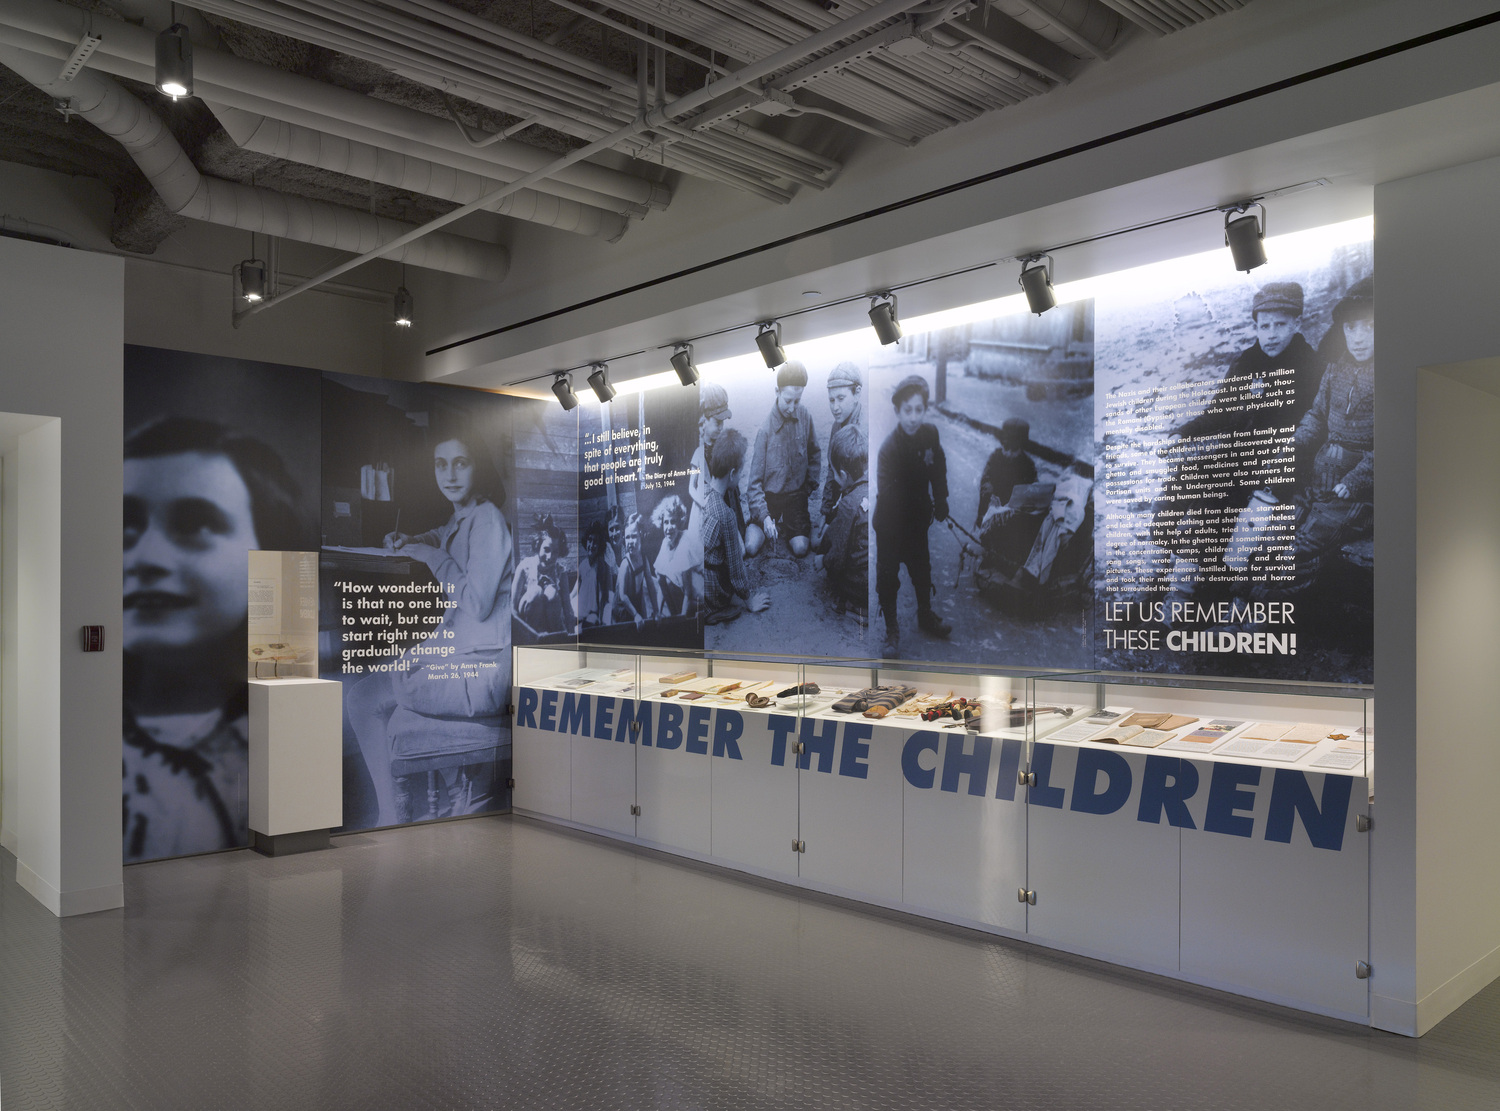 Simon Wiesenthal Center, Museum of Tolerance, Los Angeles, CA